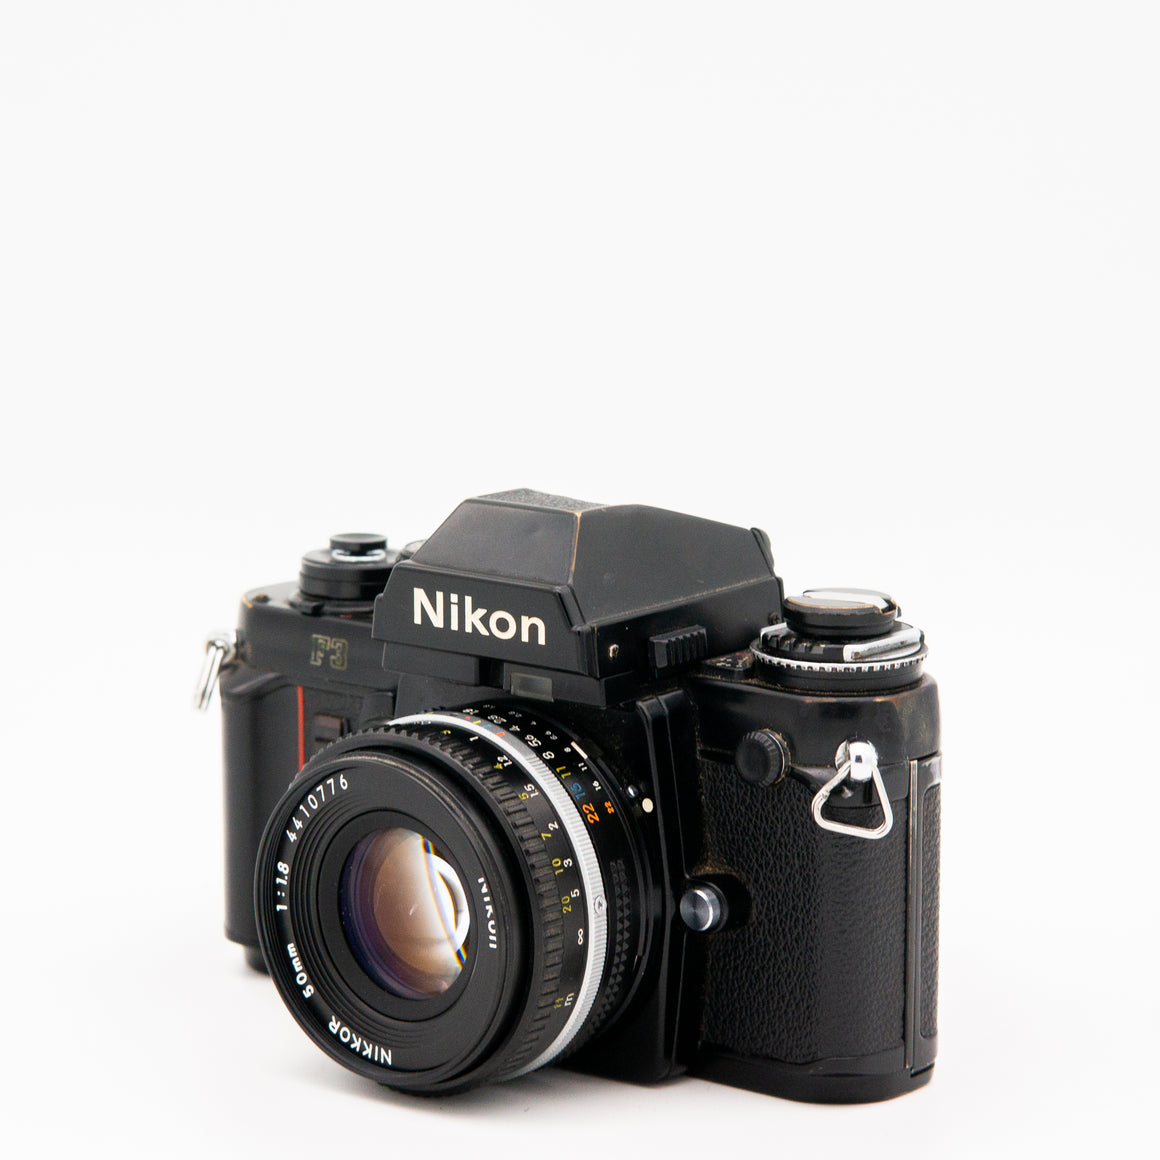 Nikon F3HP SLR Camera with Nikkor 50mm f/1.2 Lens, Motor Drive, Flash & Case